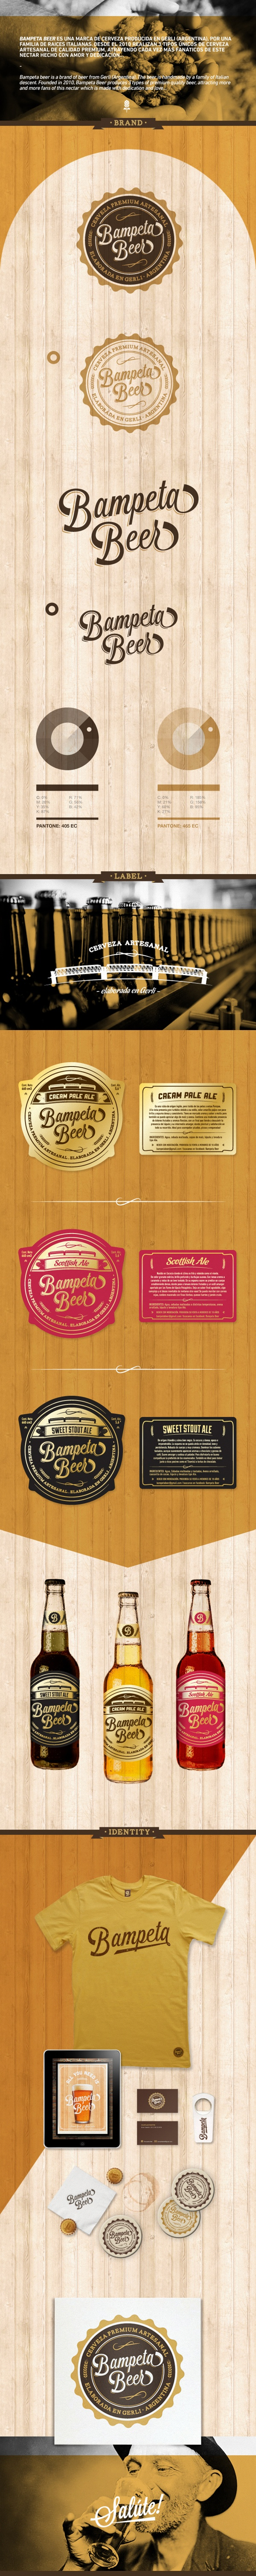 Bampeta Beer by Emiliano Aranguren, via Behance